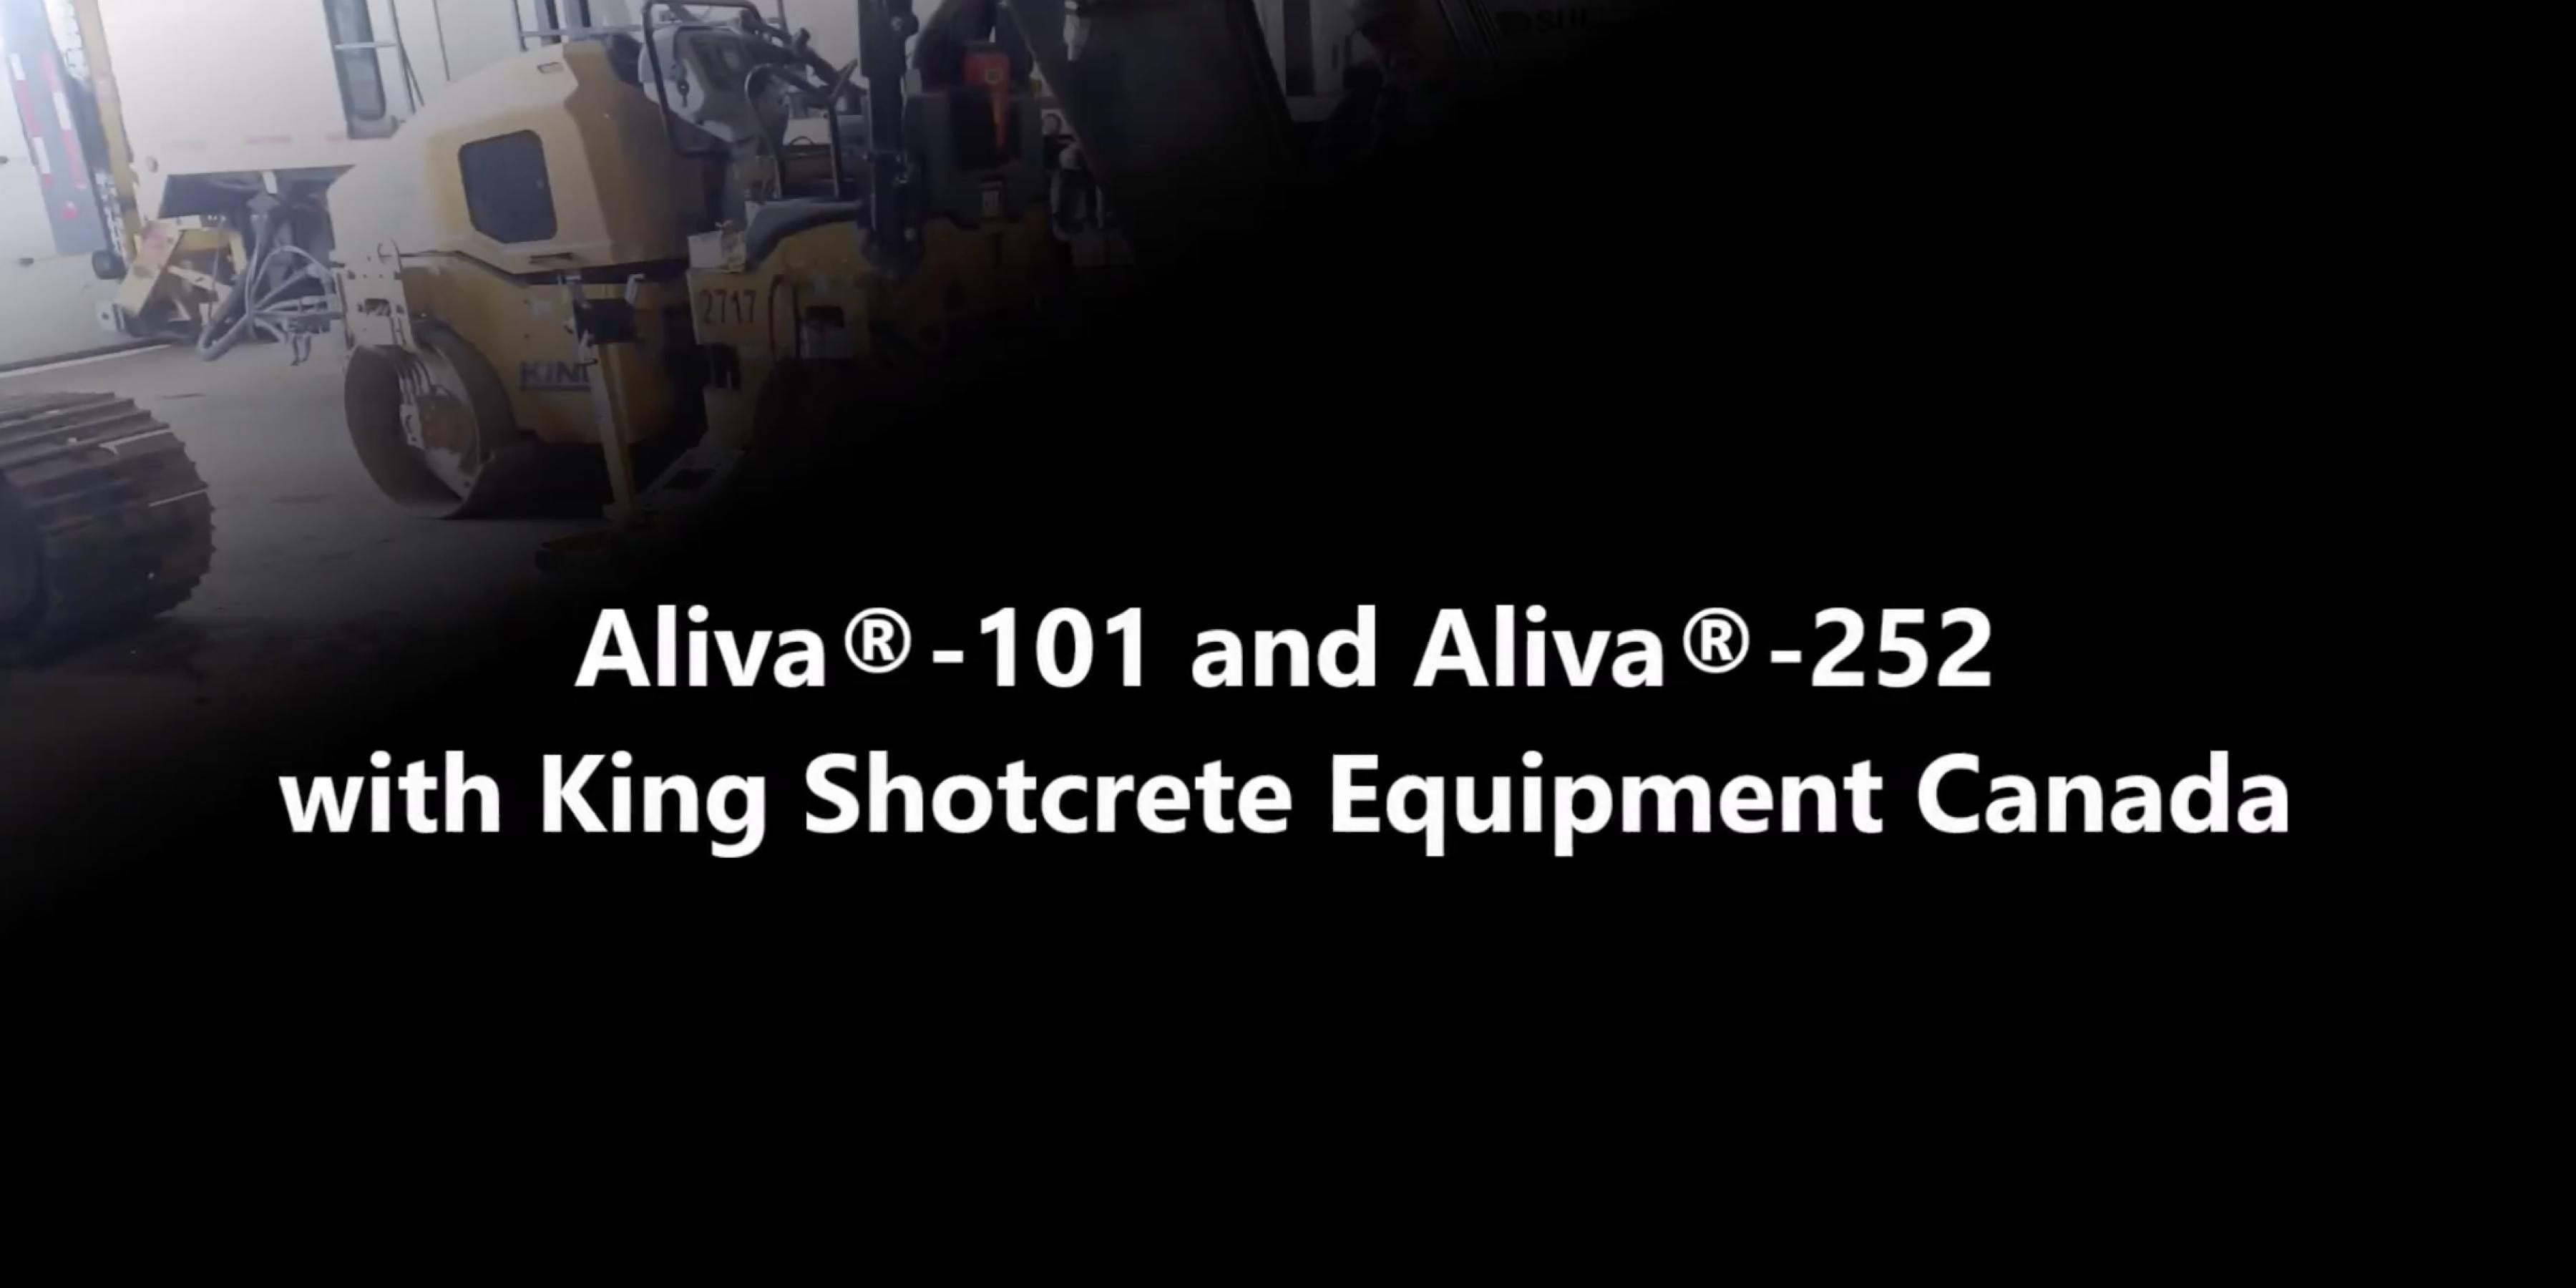 King Shotcrete Equipment Canada - AL-252 & AL-101 Demo